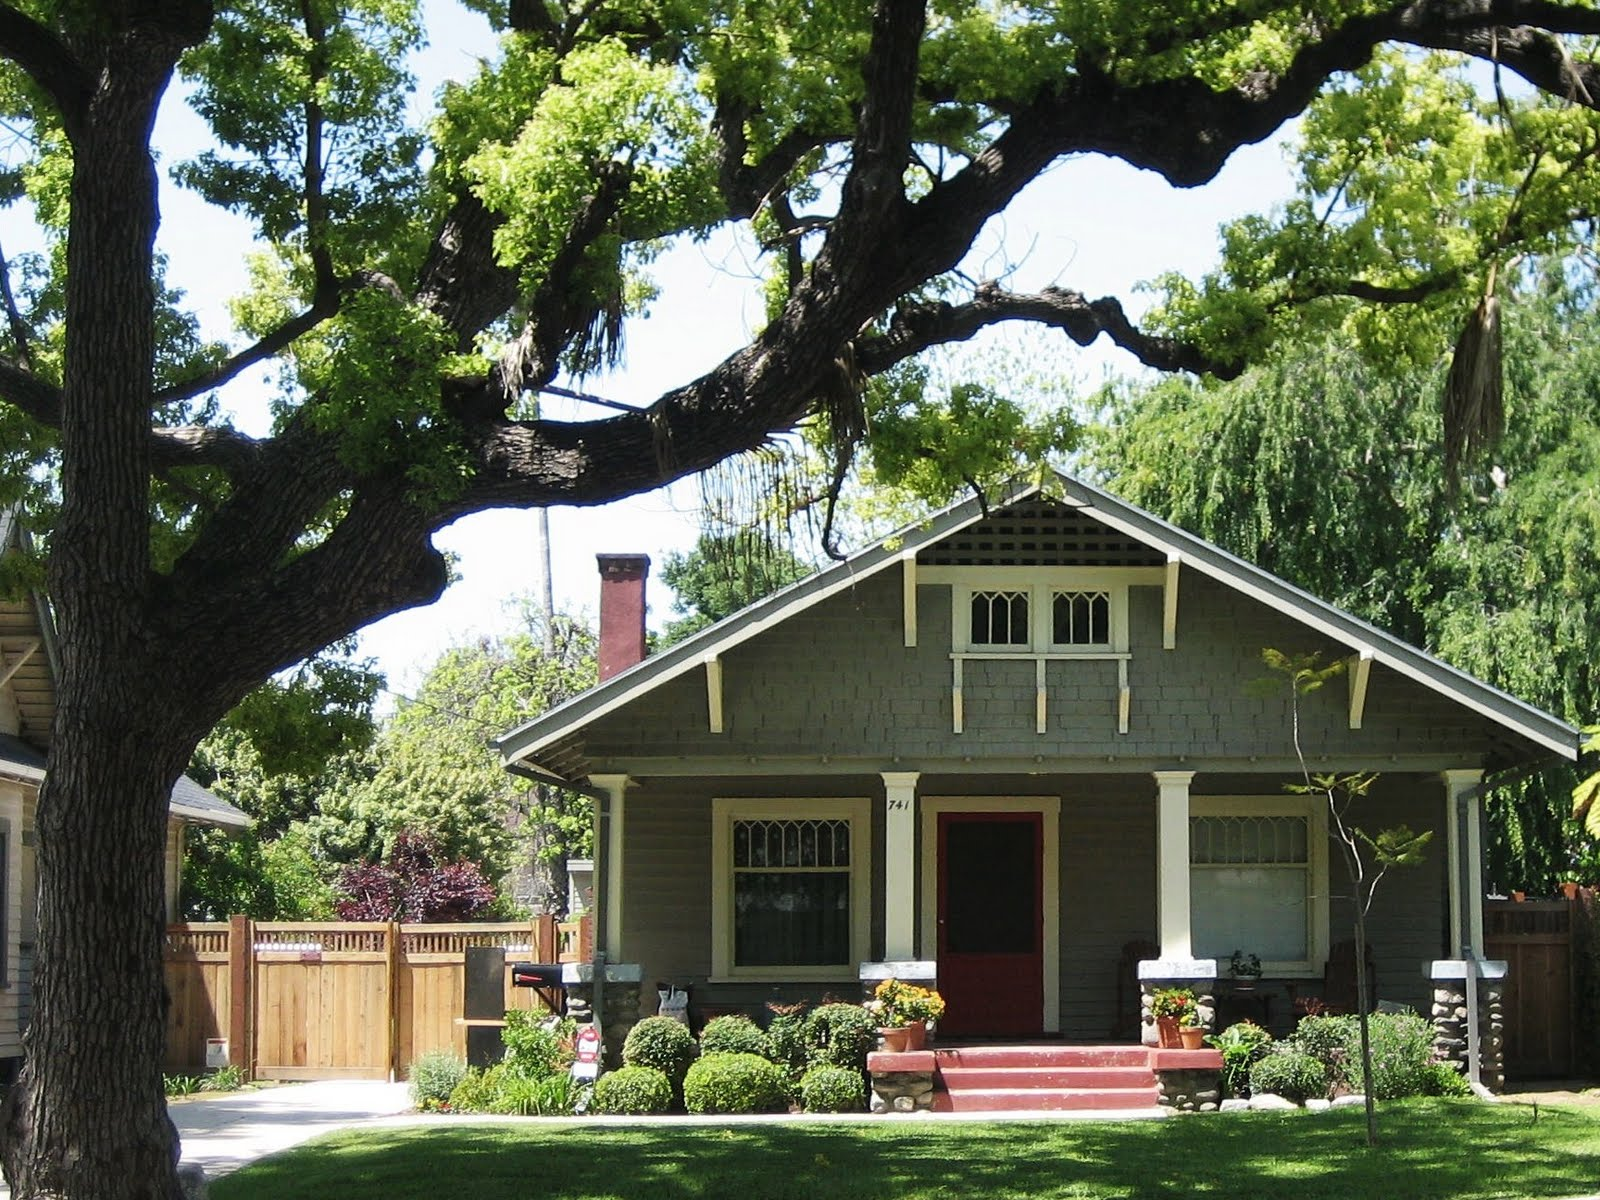 American craftsman bungalow style bungalow house plans for American style house plans